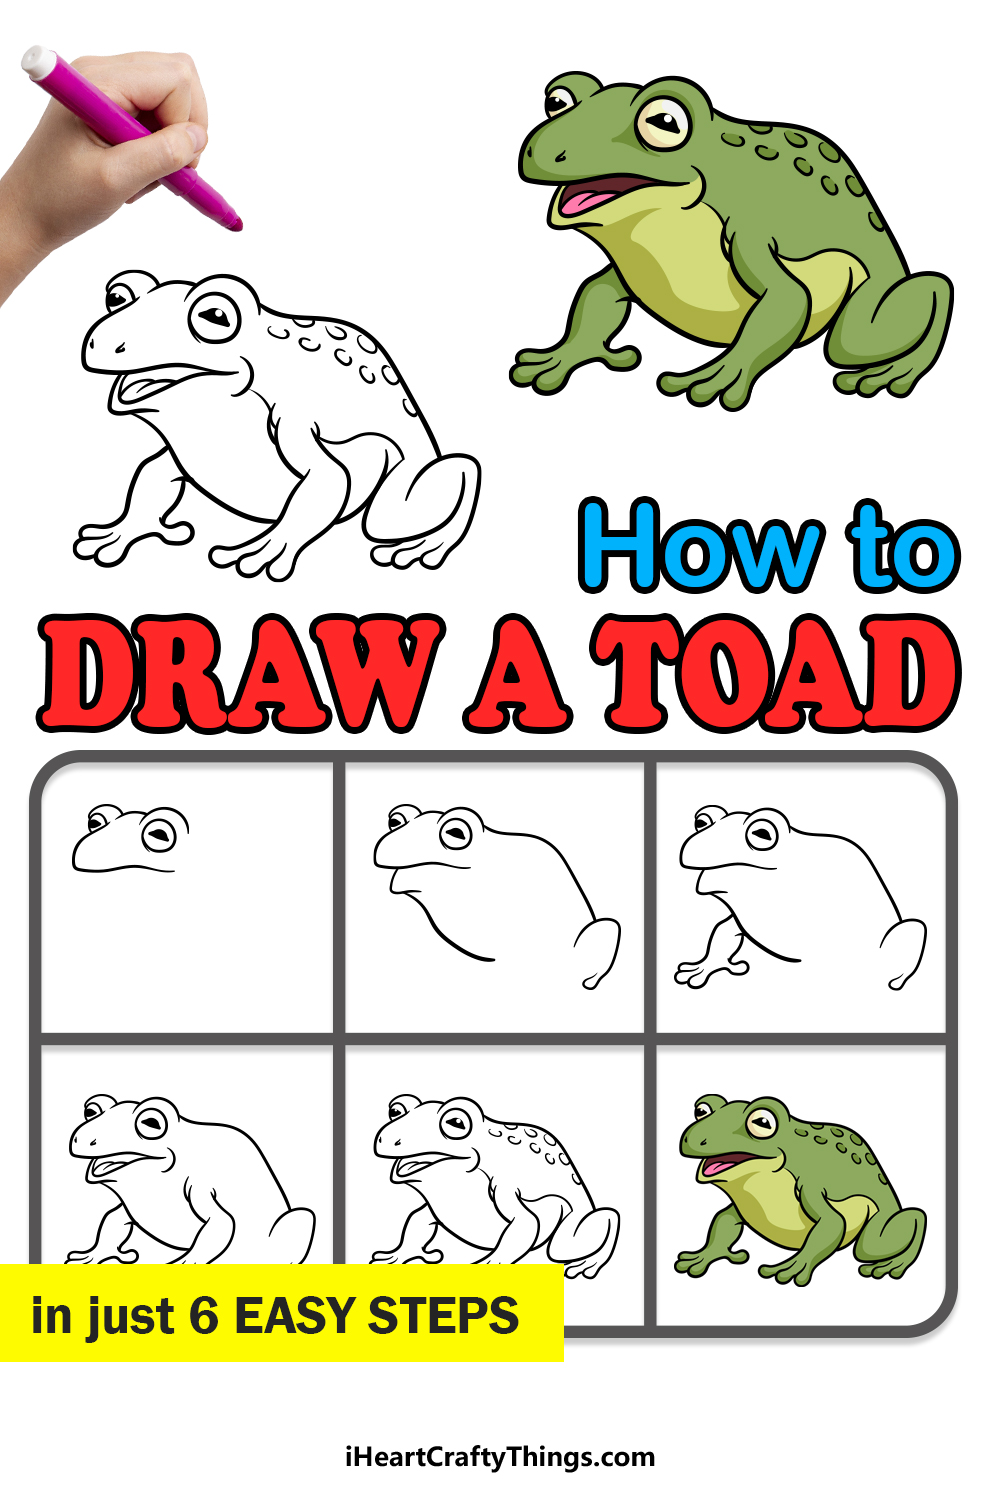 how to draw a toad in 6 easy steps